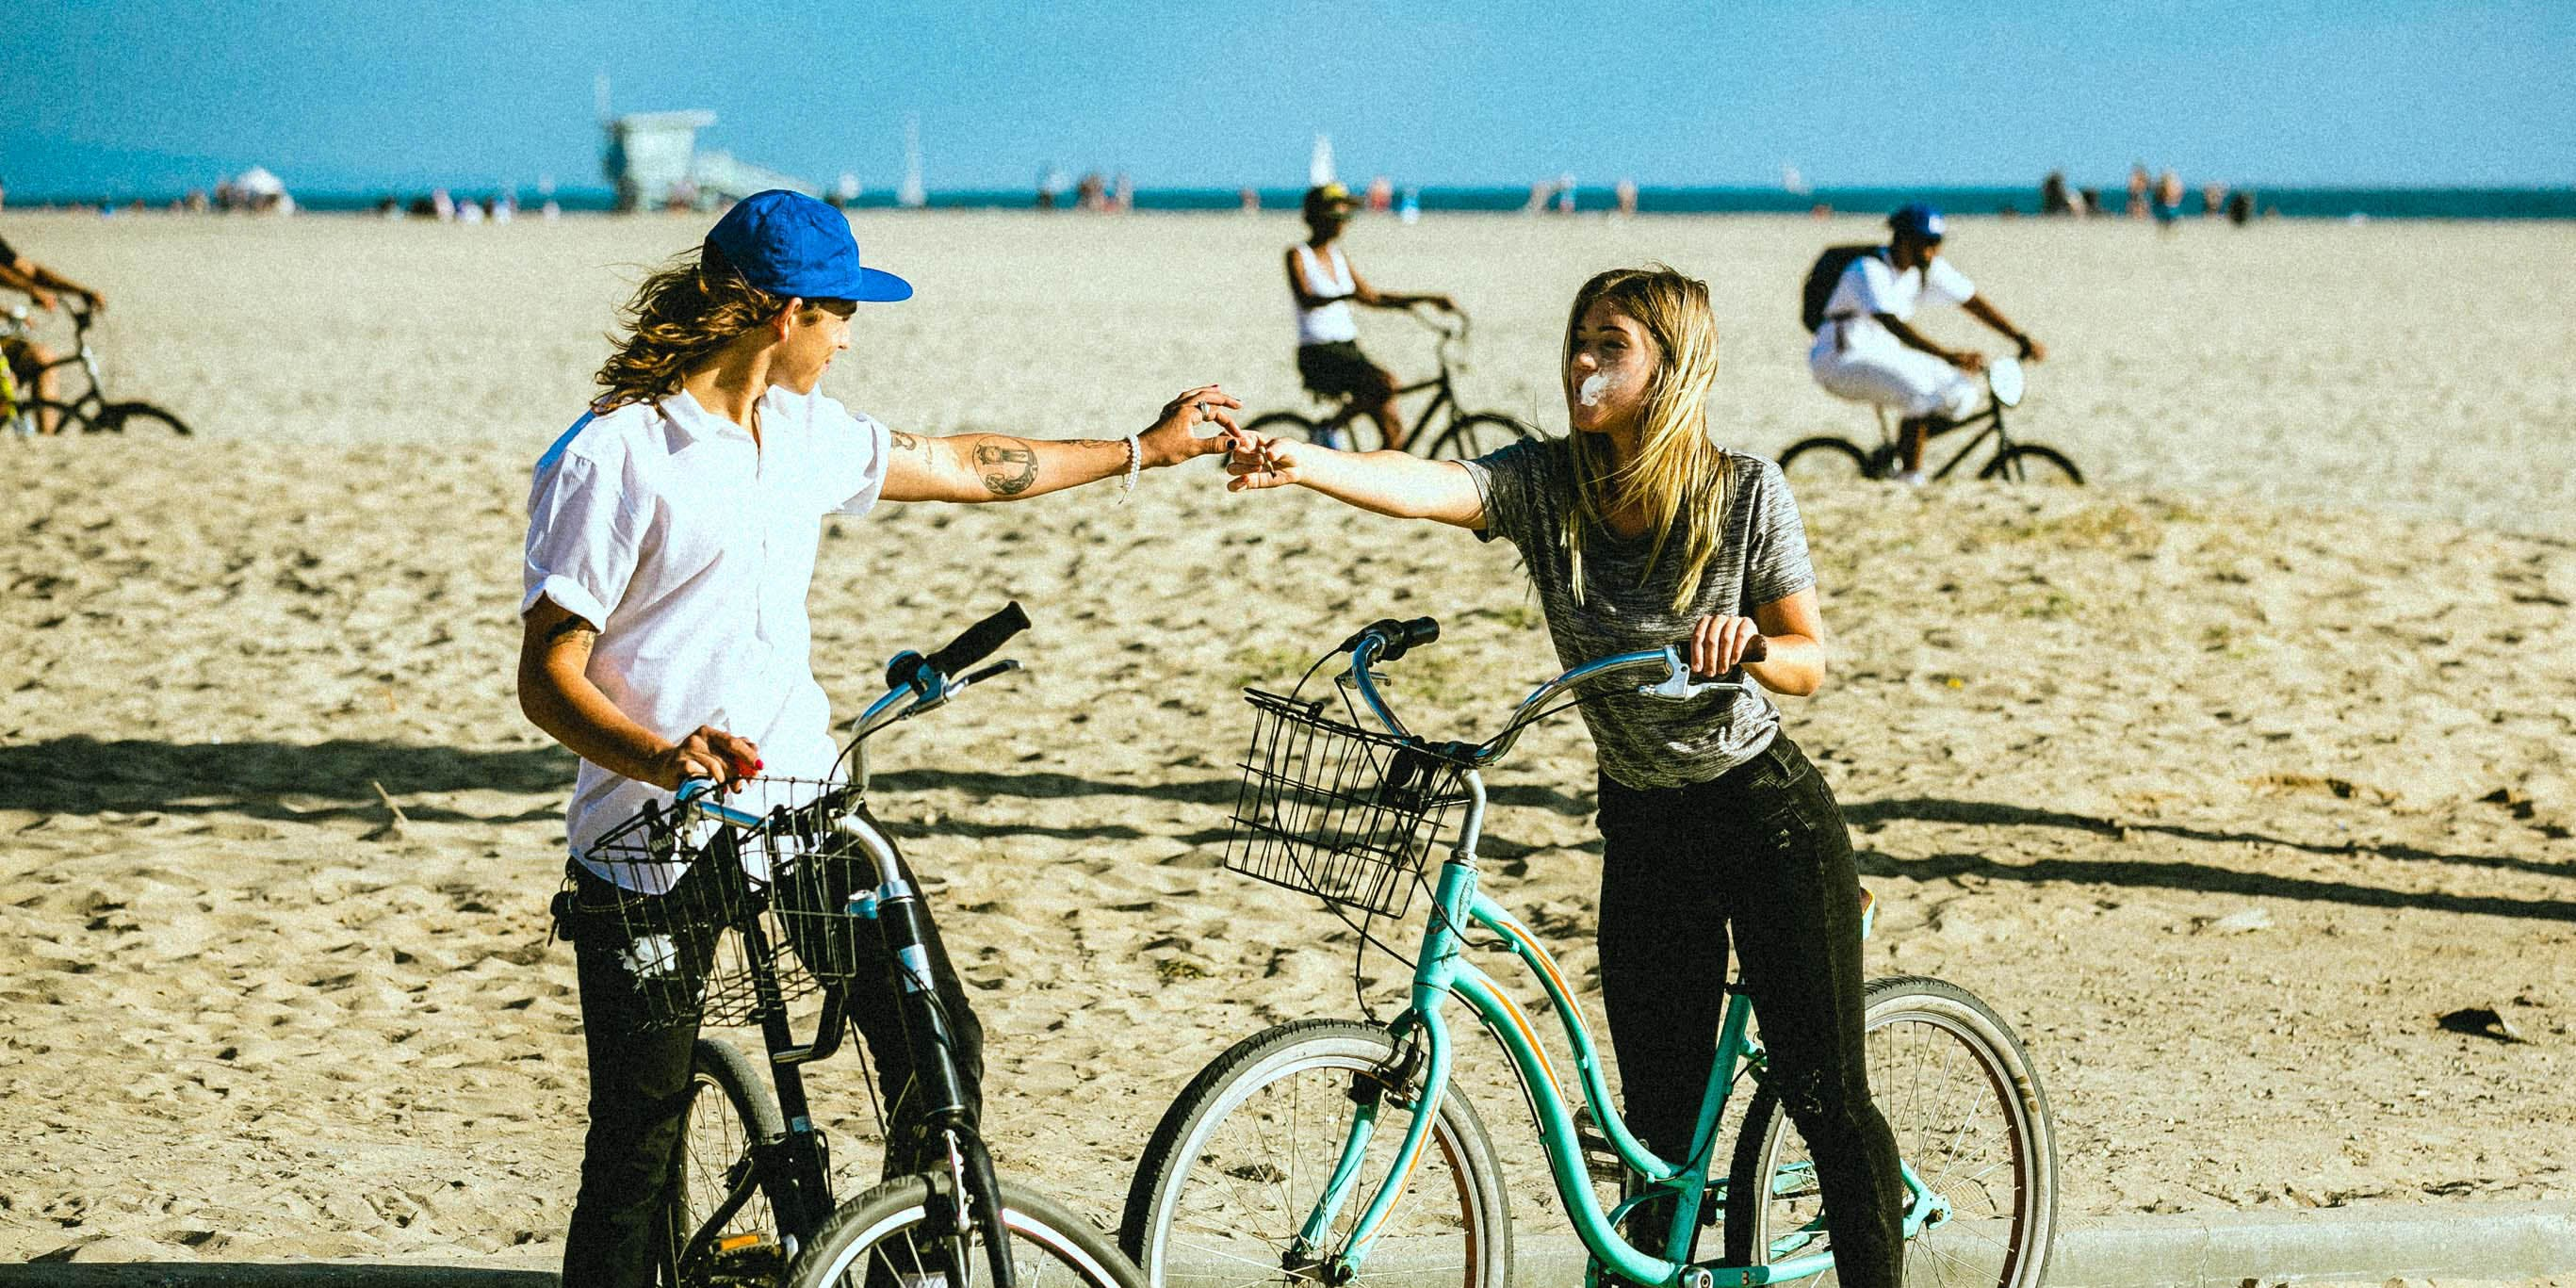 A couple share a joint on the beach. There are now more weed dating apps on the market to help people with a mutual love for the herb find their counterpart.